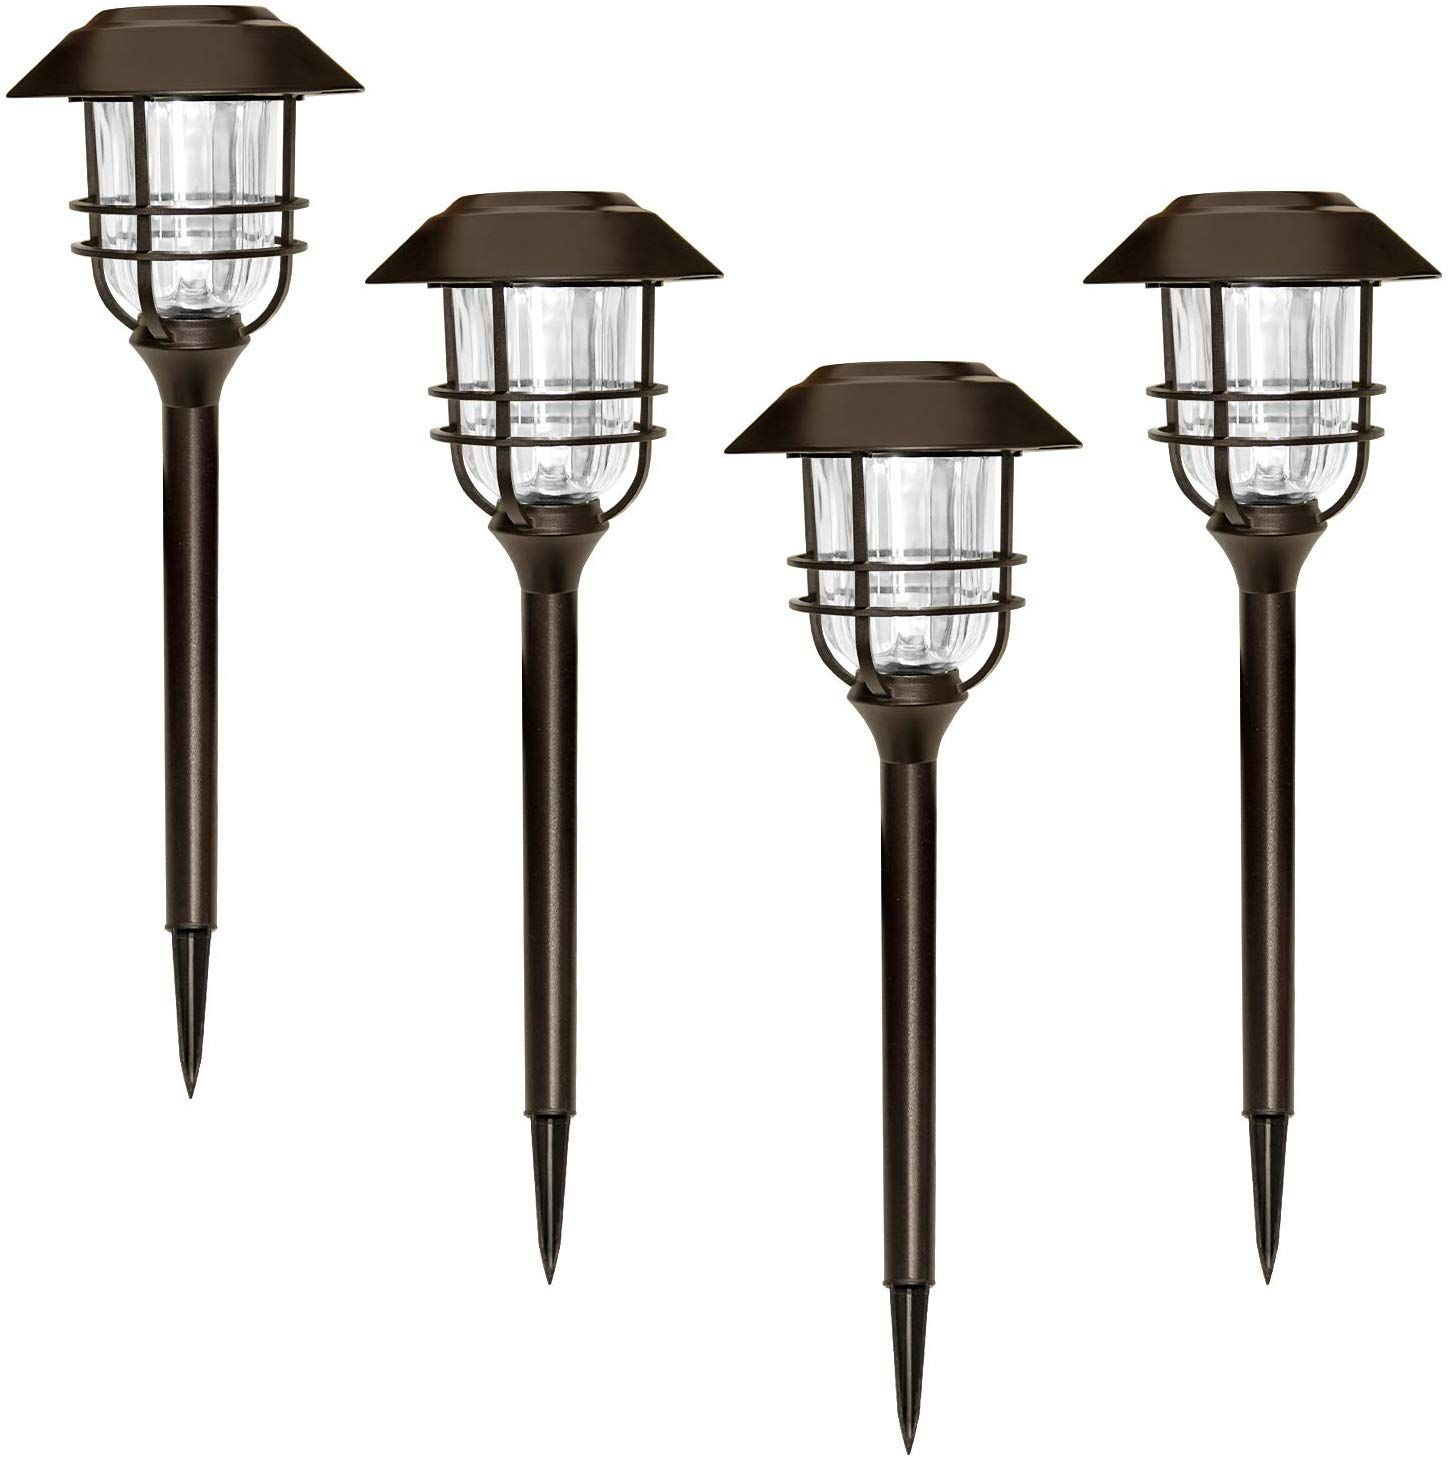 SUNWIND Outdoor LED Solar Lighting 4 Pack Bronze Outdoor